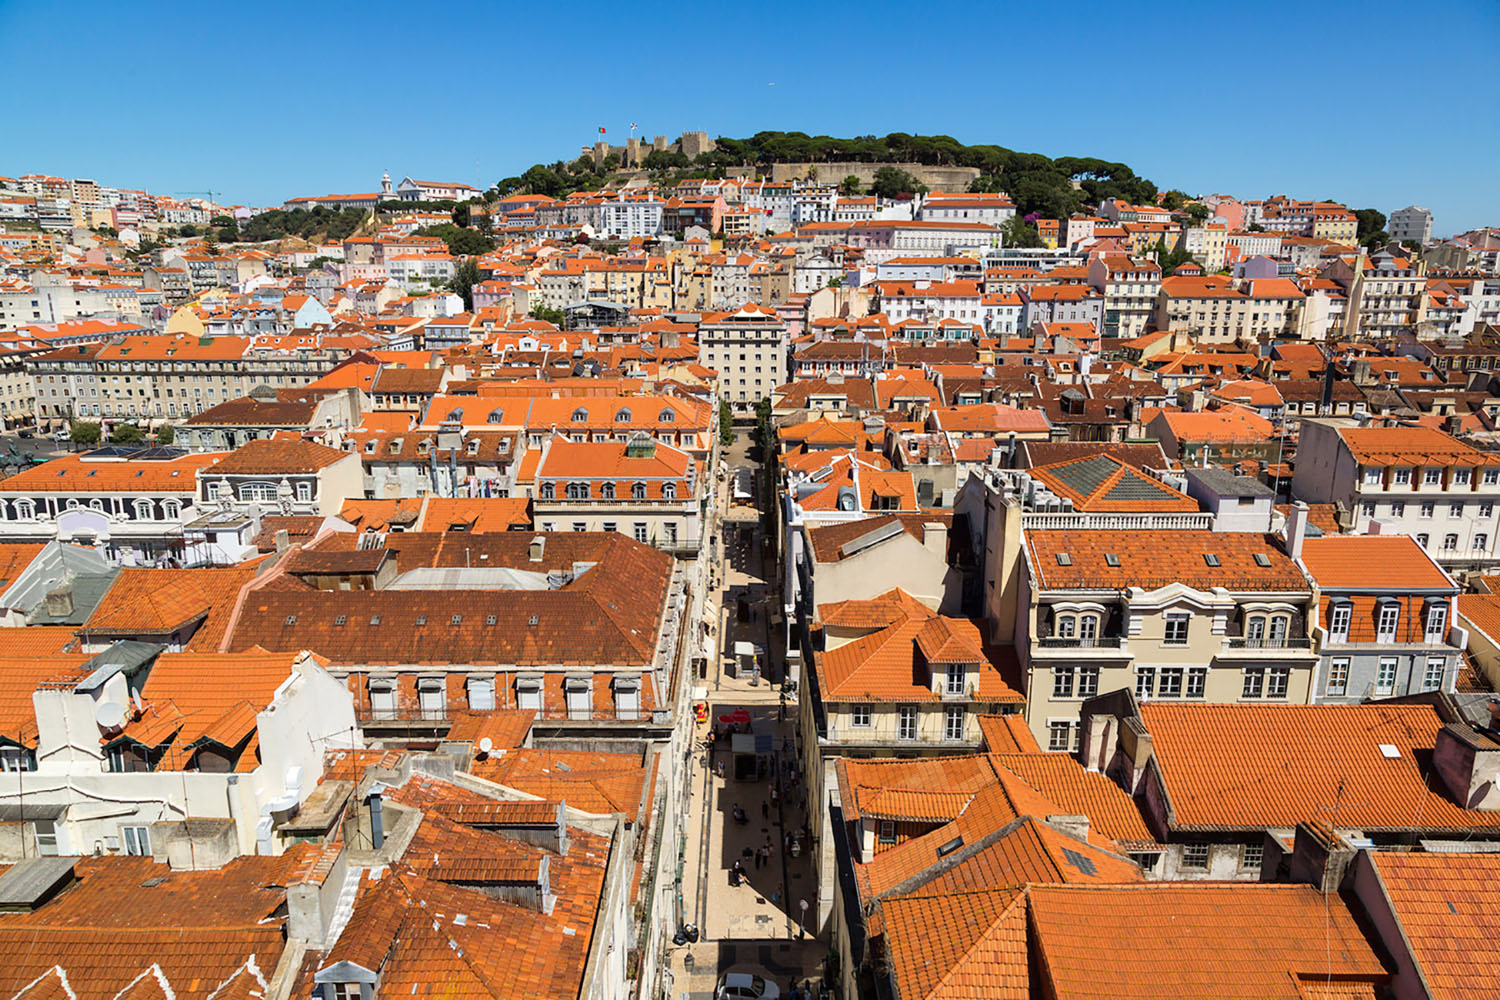 The most famous landmark in this area, Castelo de São Jorge, can be seen from almost anywhere in the city.